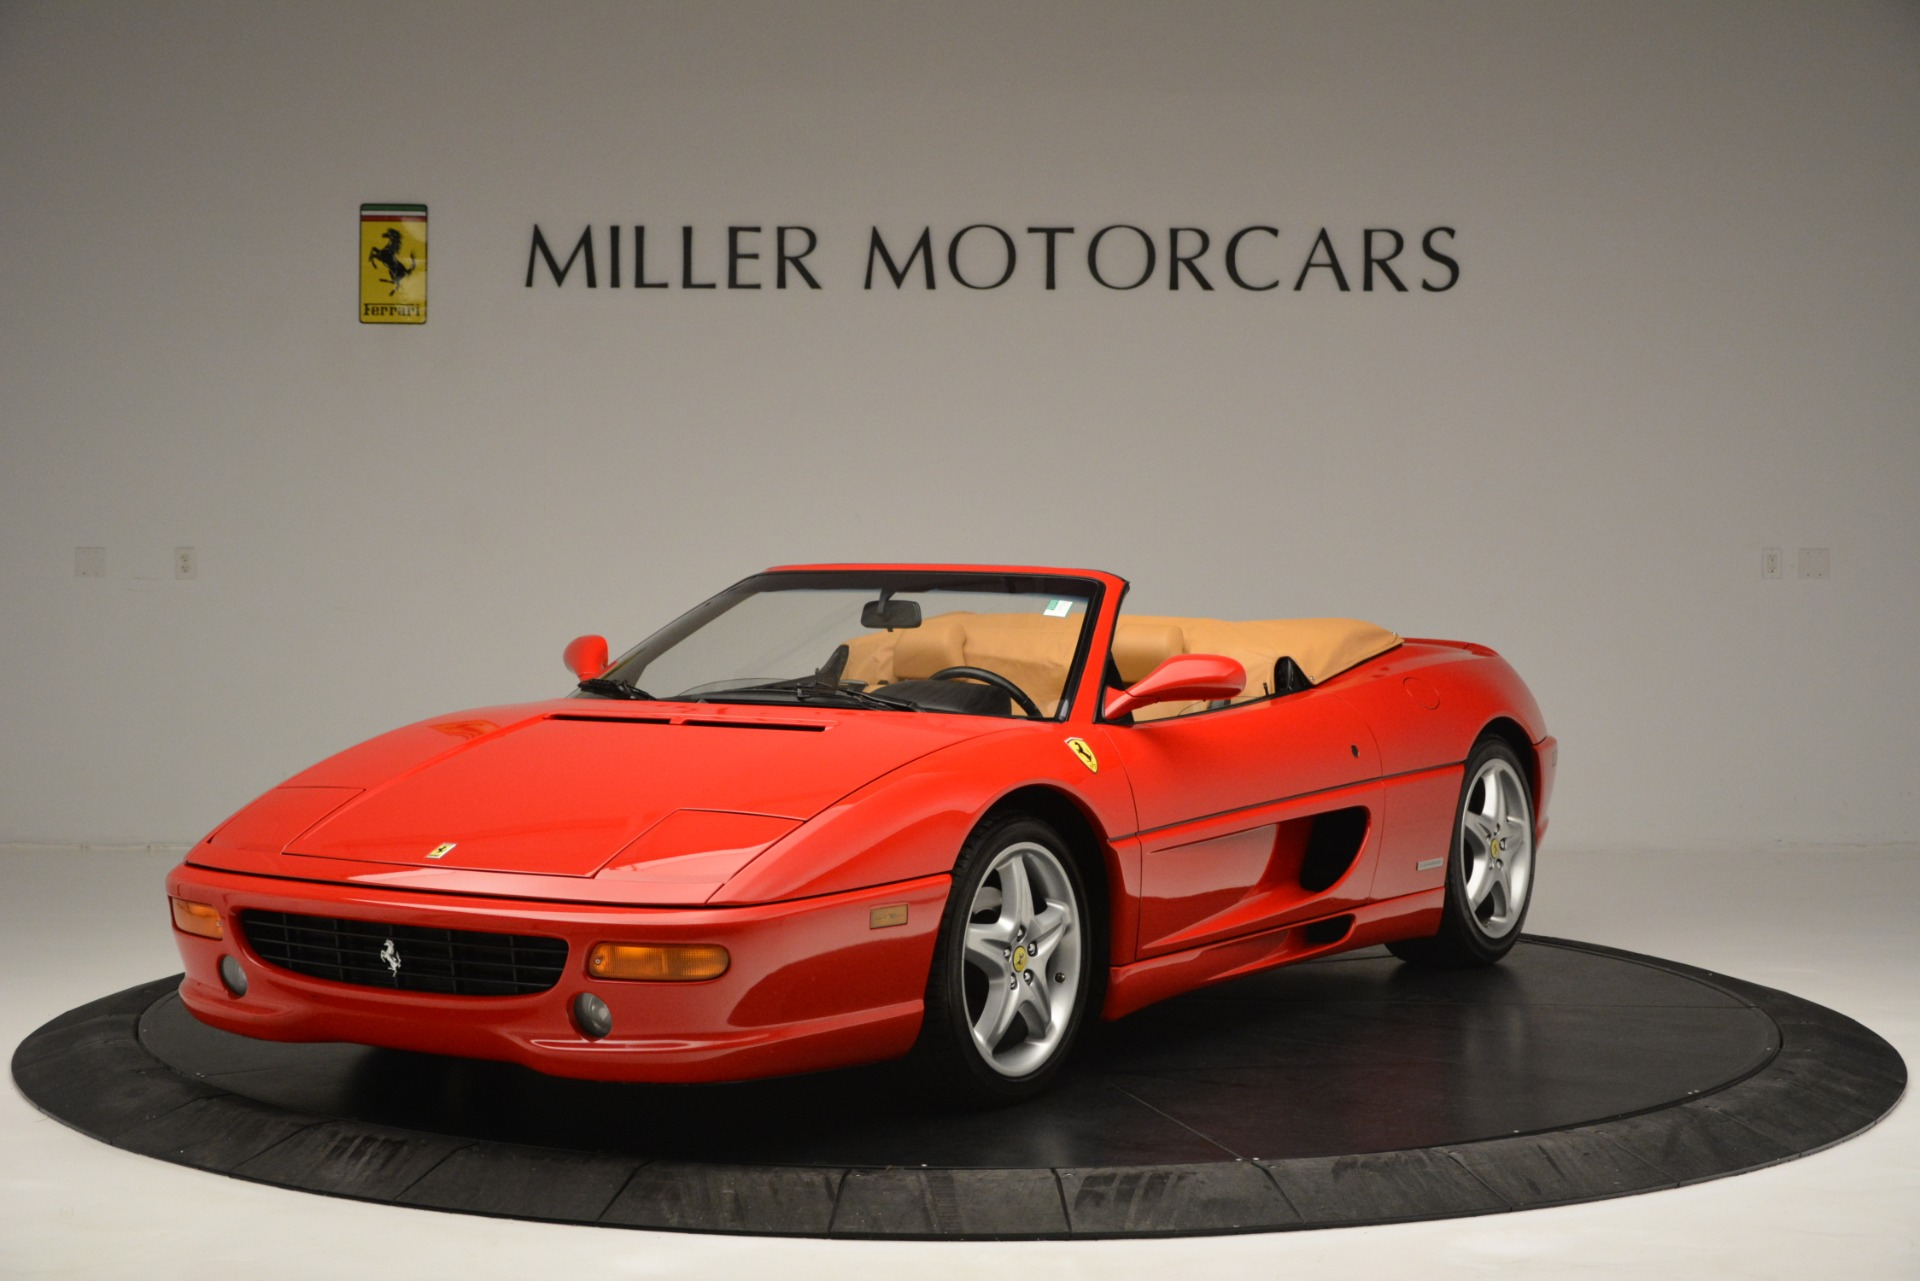 Used 1997 Ferrari 355 Spider 6-Speed Manual for sale Sold at Bugatti of Greenwich in Greenwich CT 06830 1